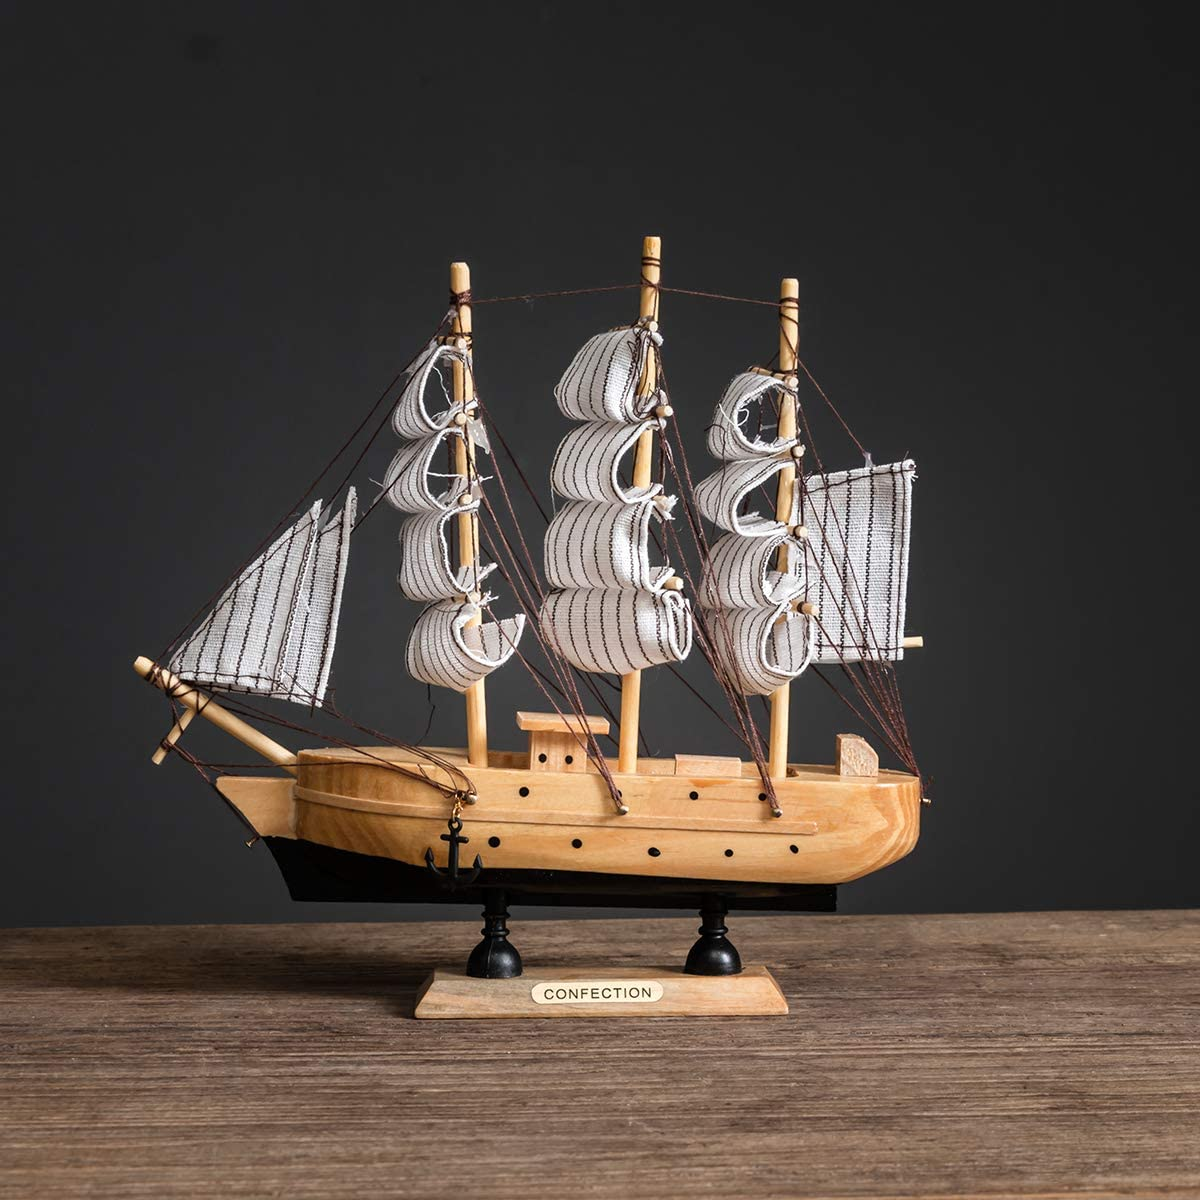 Sailing Ship Model Decor,Wooden Miniature Sailing Boat Model Handmade Vintage Nautical Sail Ship 7.87x1.77x7.87 Inch for Tabletop Ornament, Ocean Theme Home Decor - 15 Colors (A)